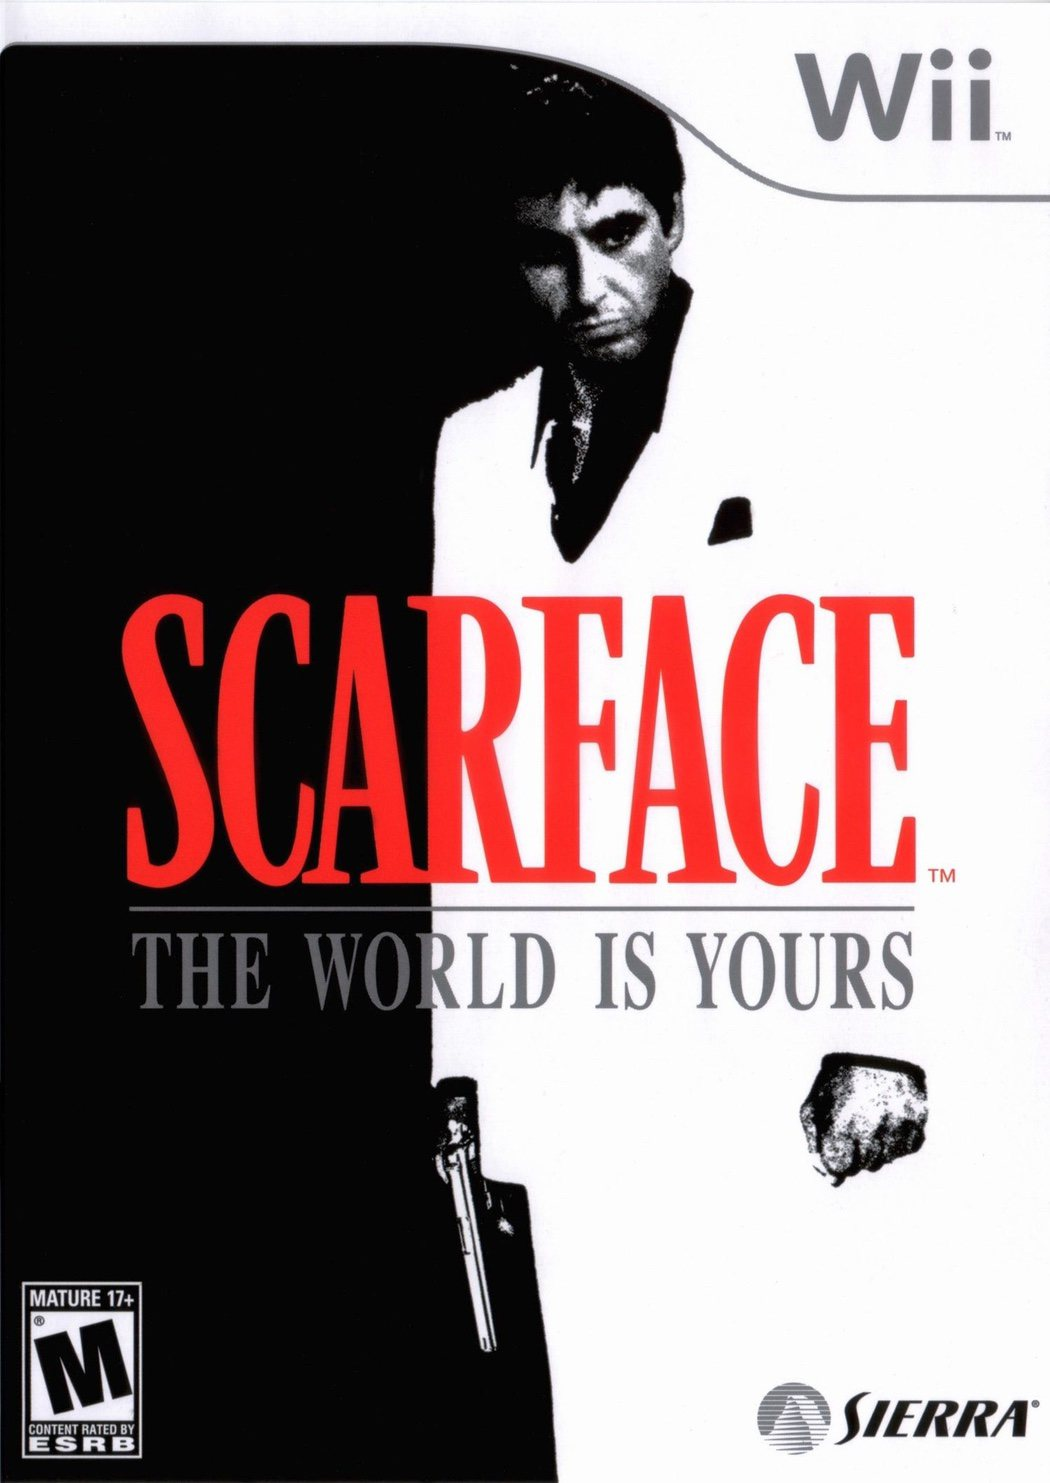 'Scarface: The World is Yours'